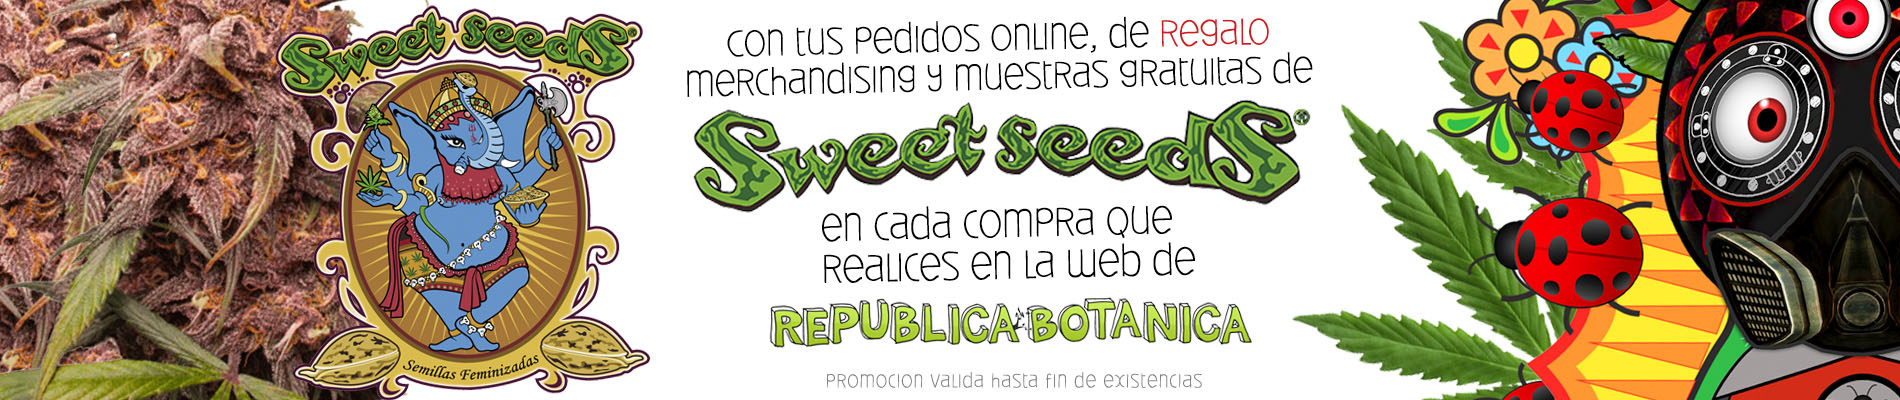 banner-web-promo-sweet-seeds-2